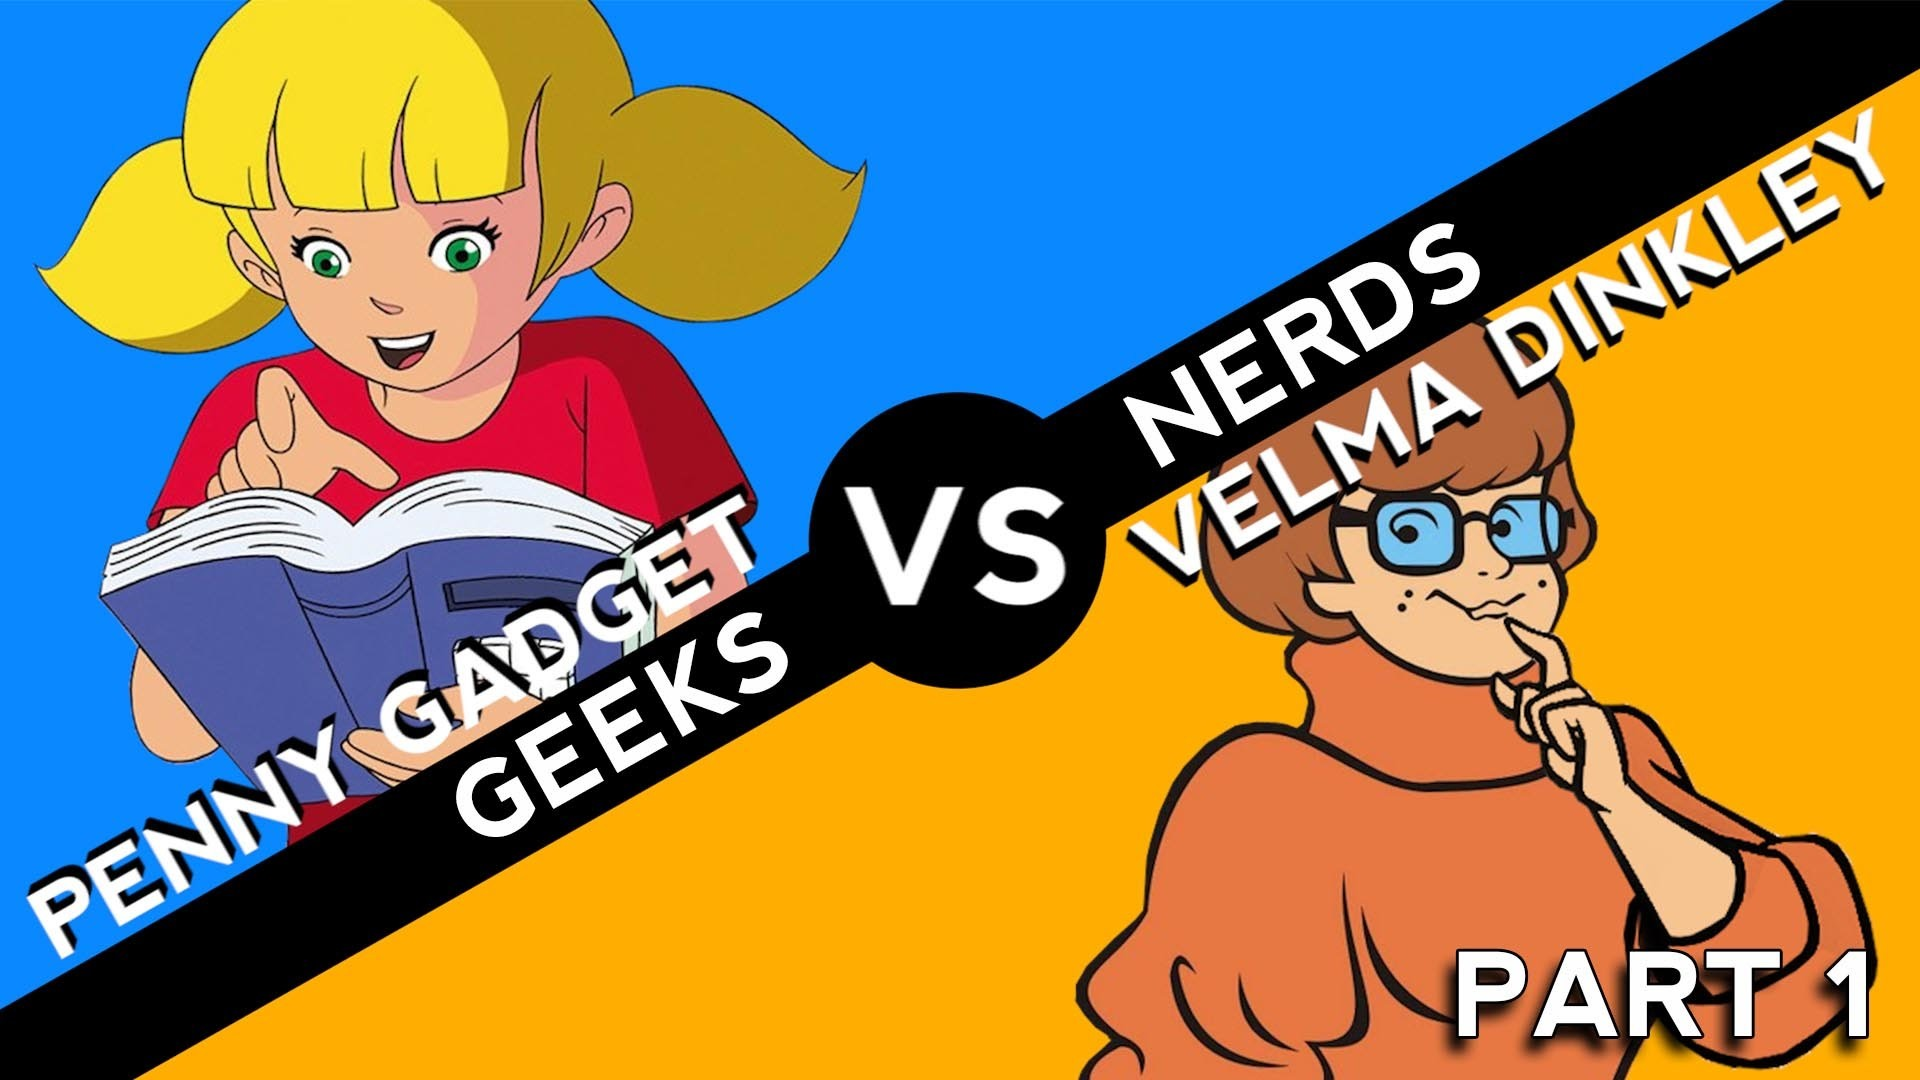 1920x1080 Penny Gadget vs Velma Dinkley: Detectives Traveling with Stupid Companions  (Part 1) - YouTube